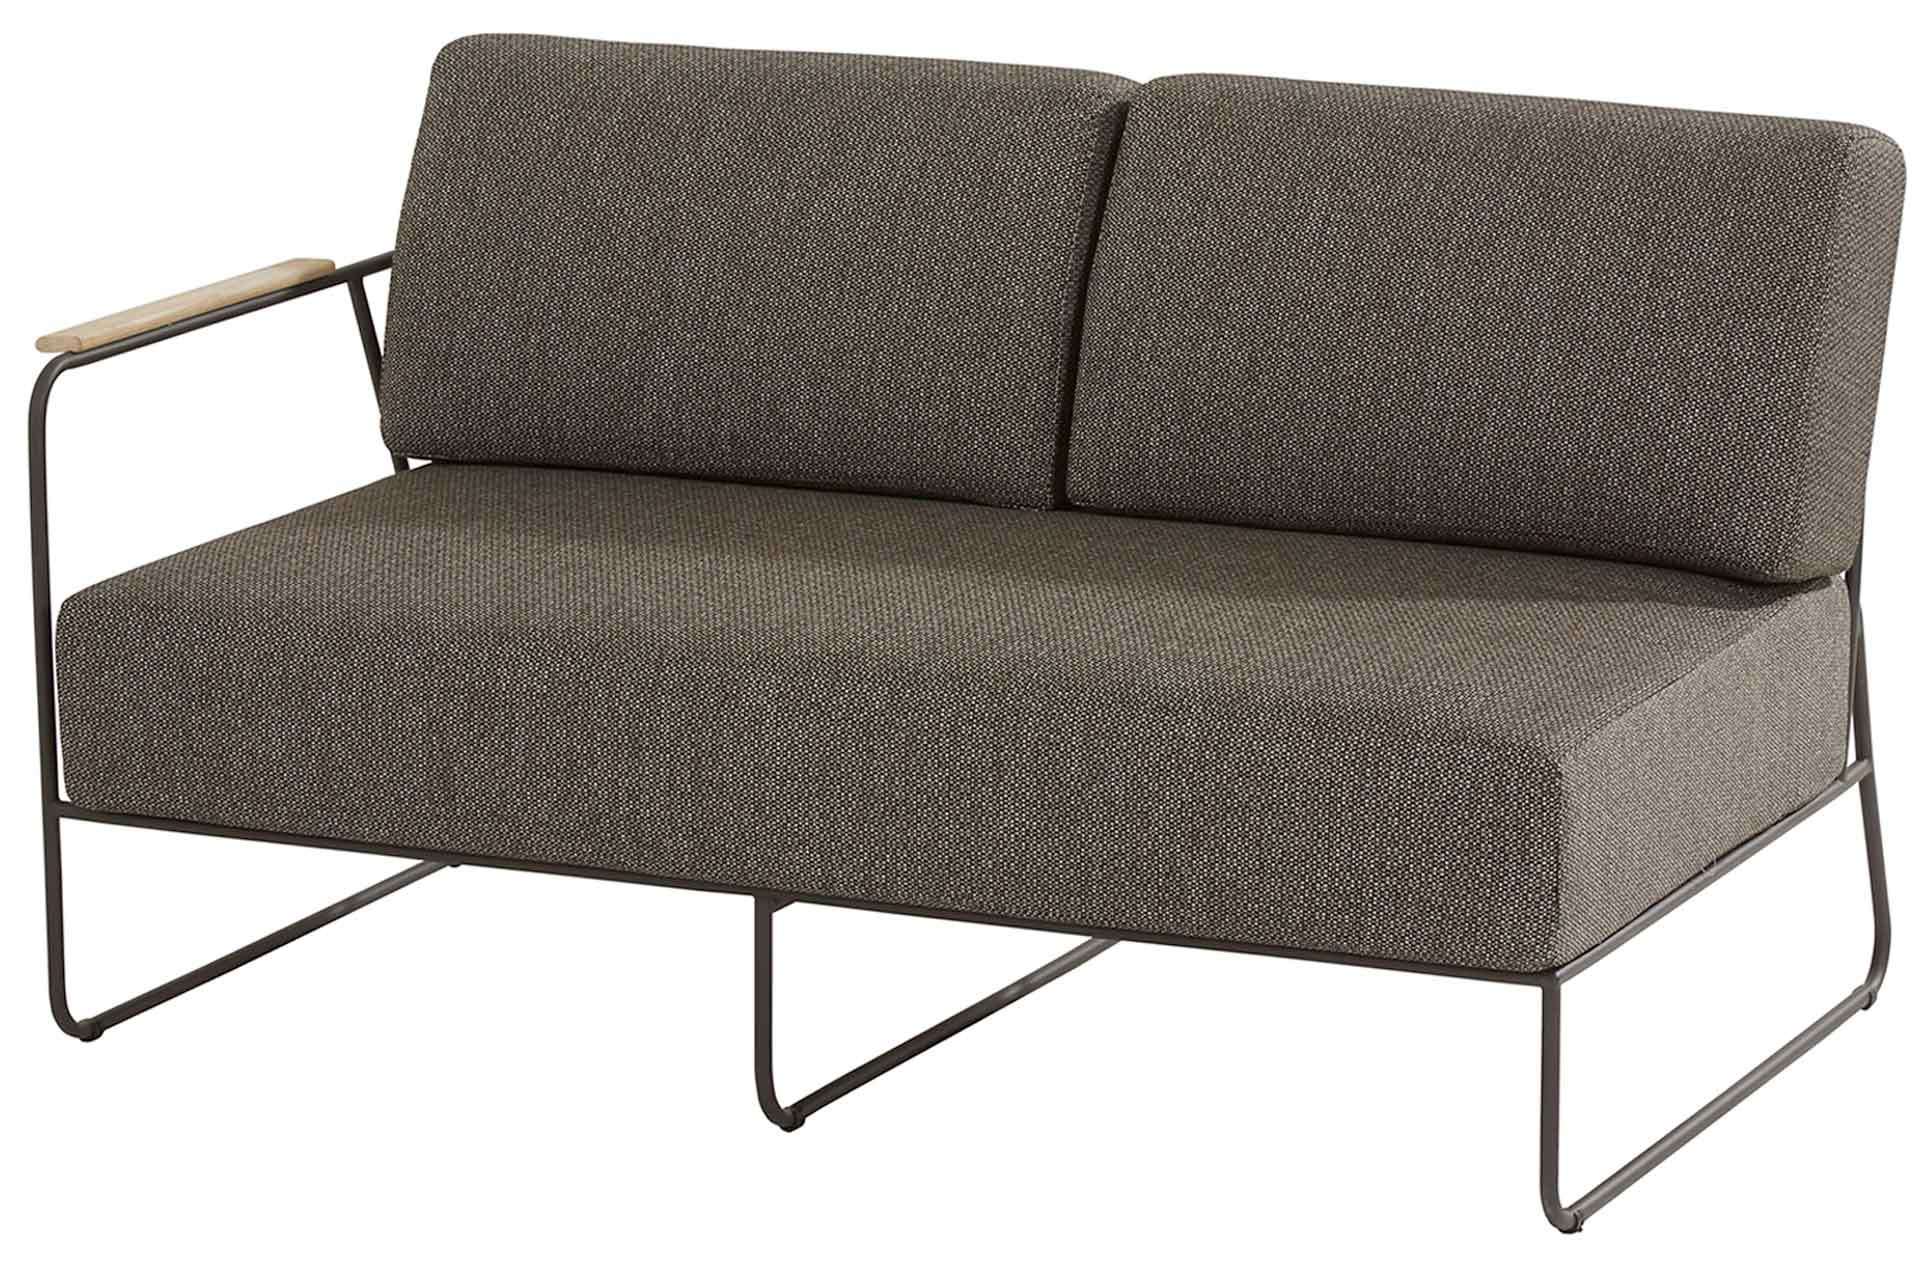 Coast modular 2 seater right arm with 4 cushions